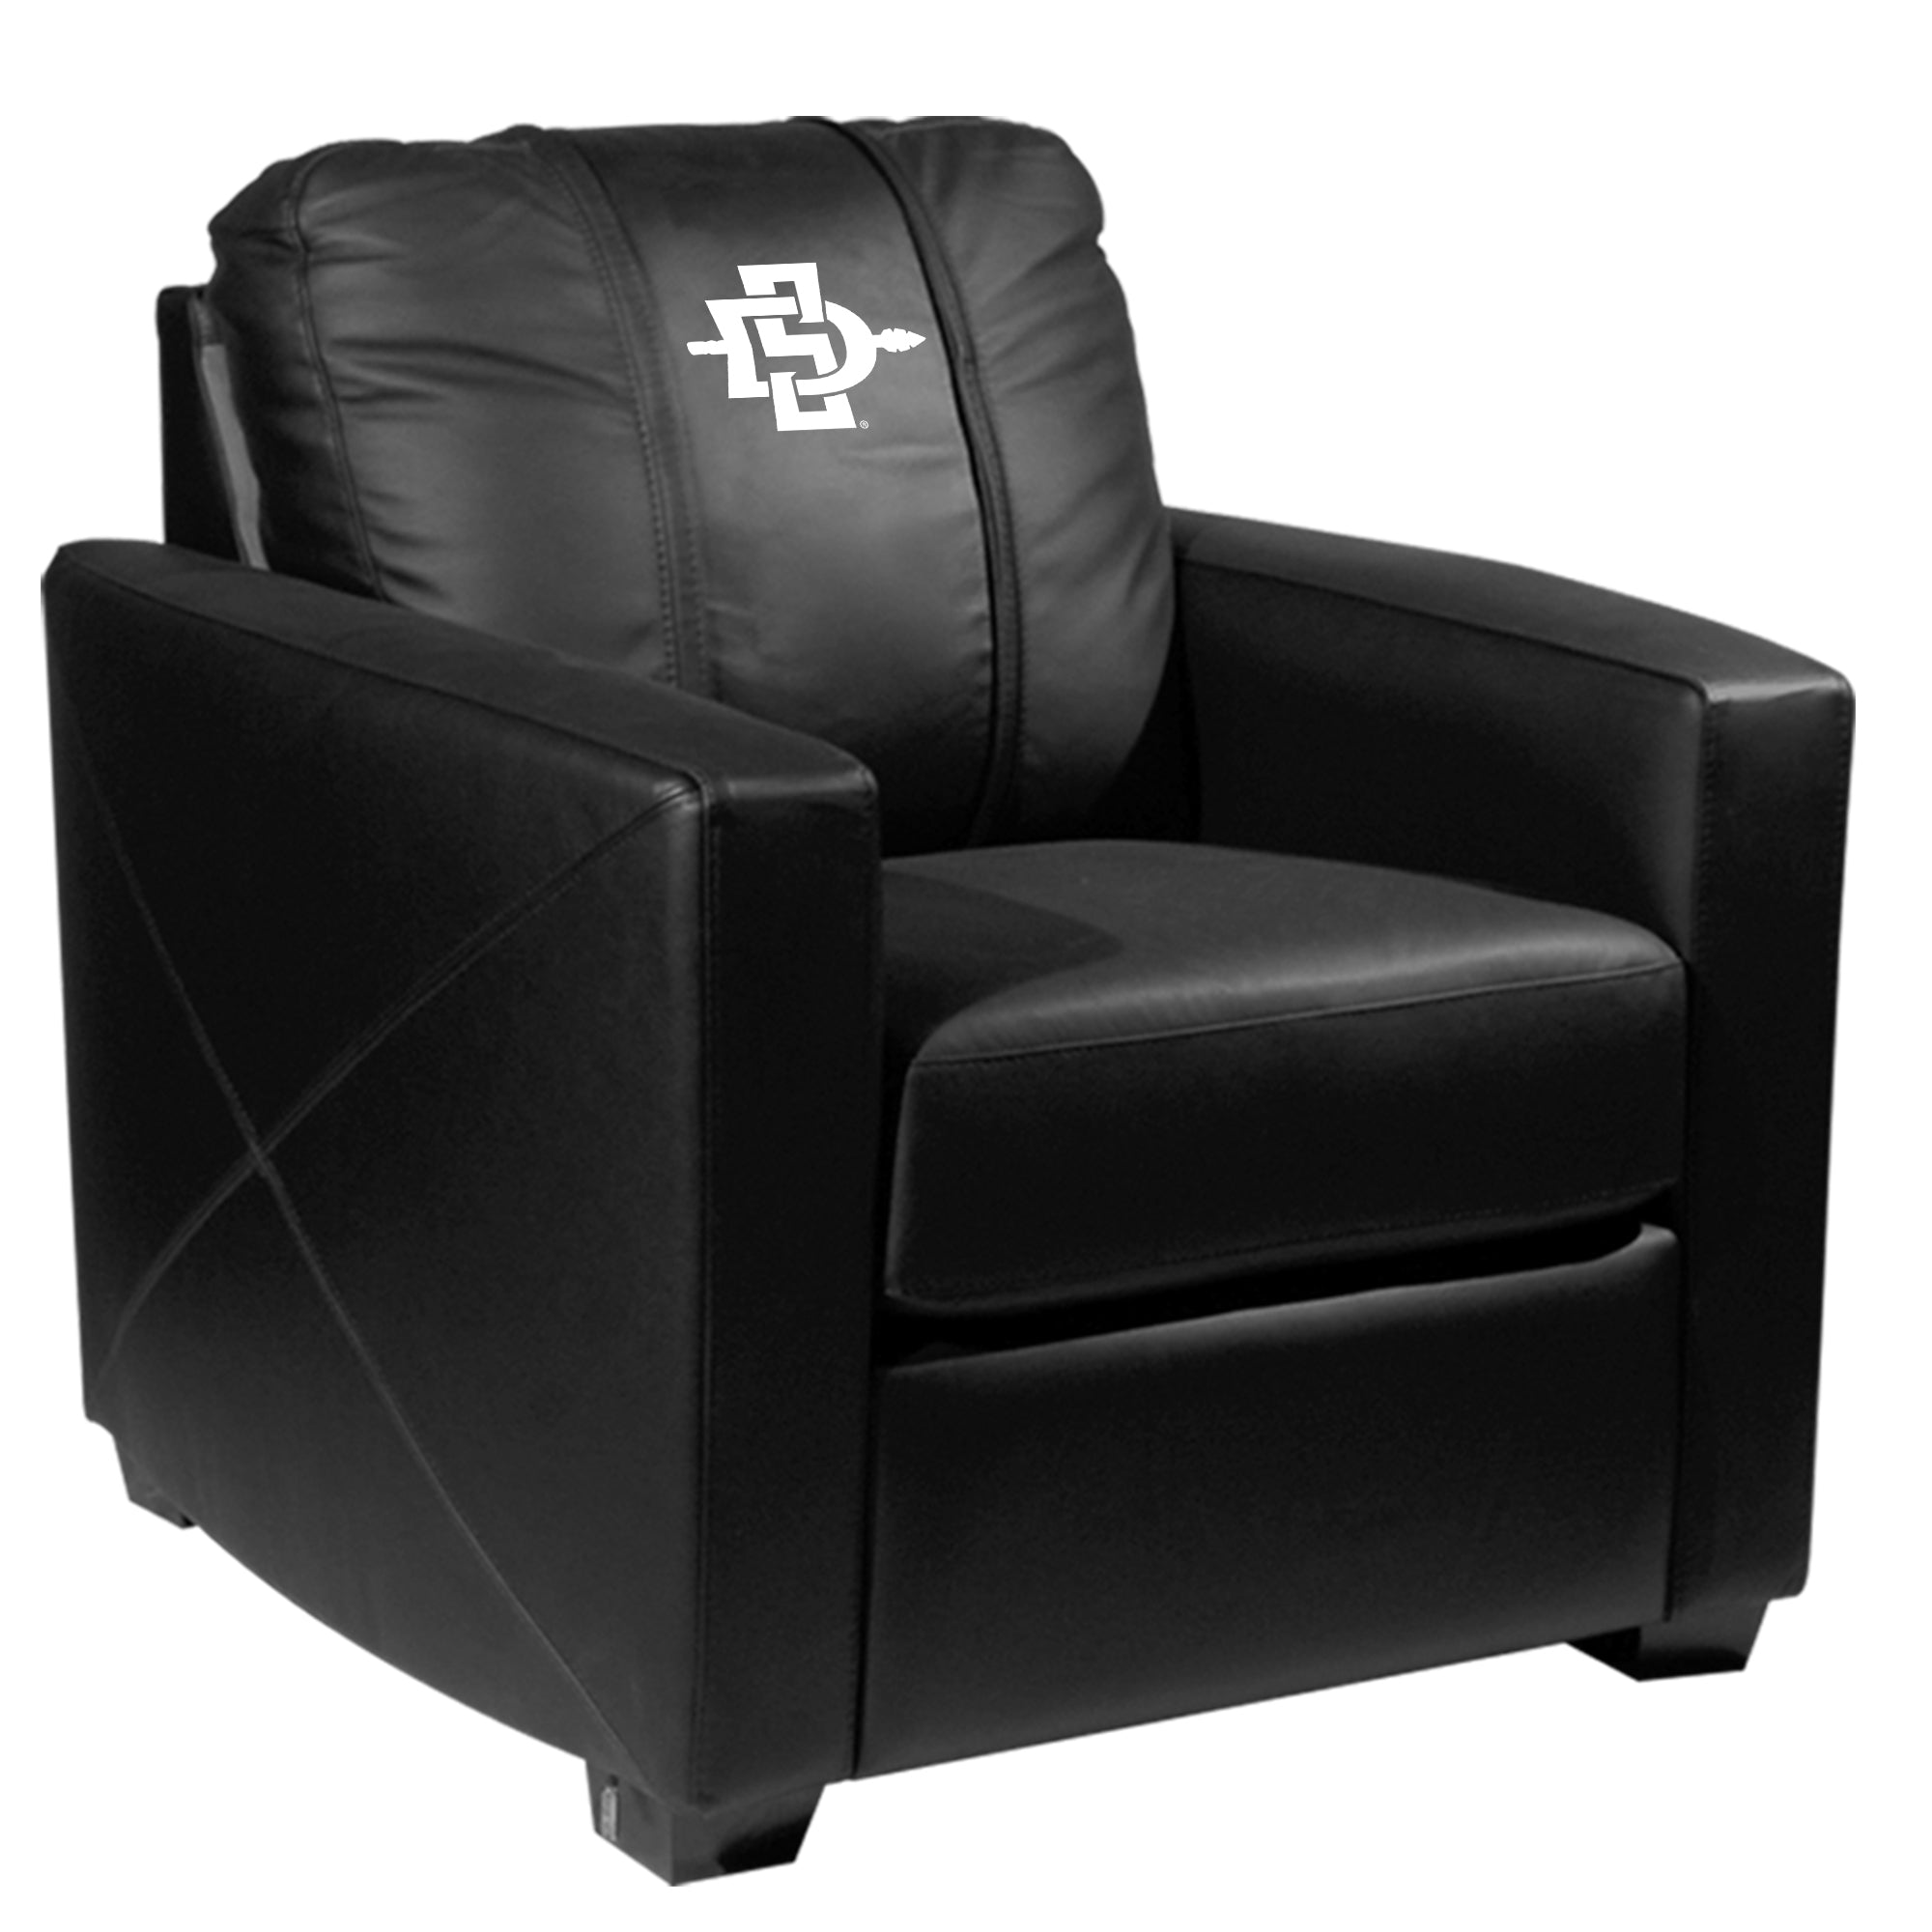 Silver Club Chair with San Diego State Alternate